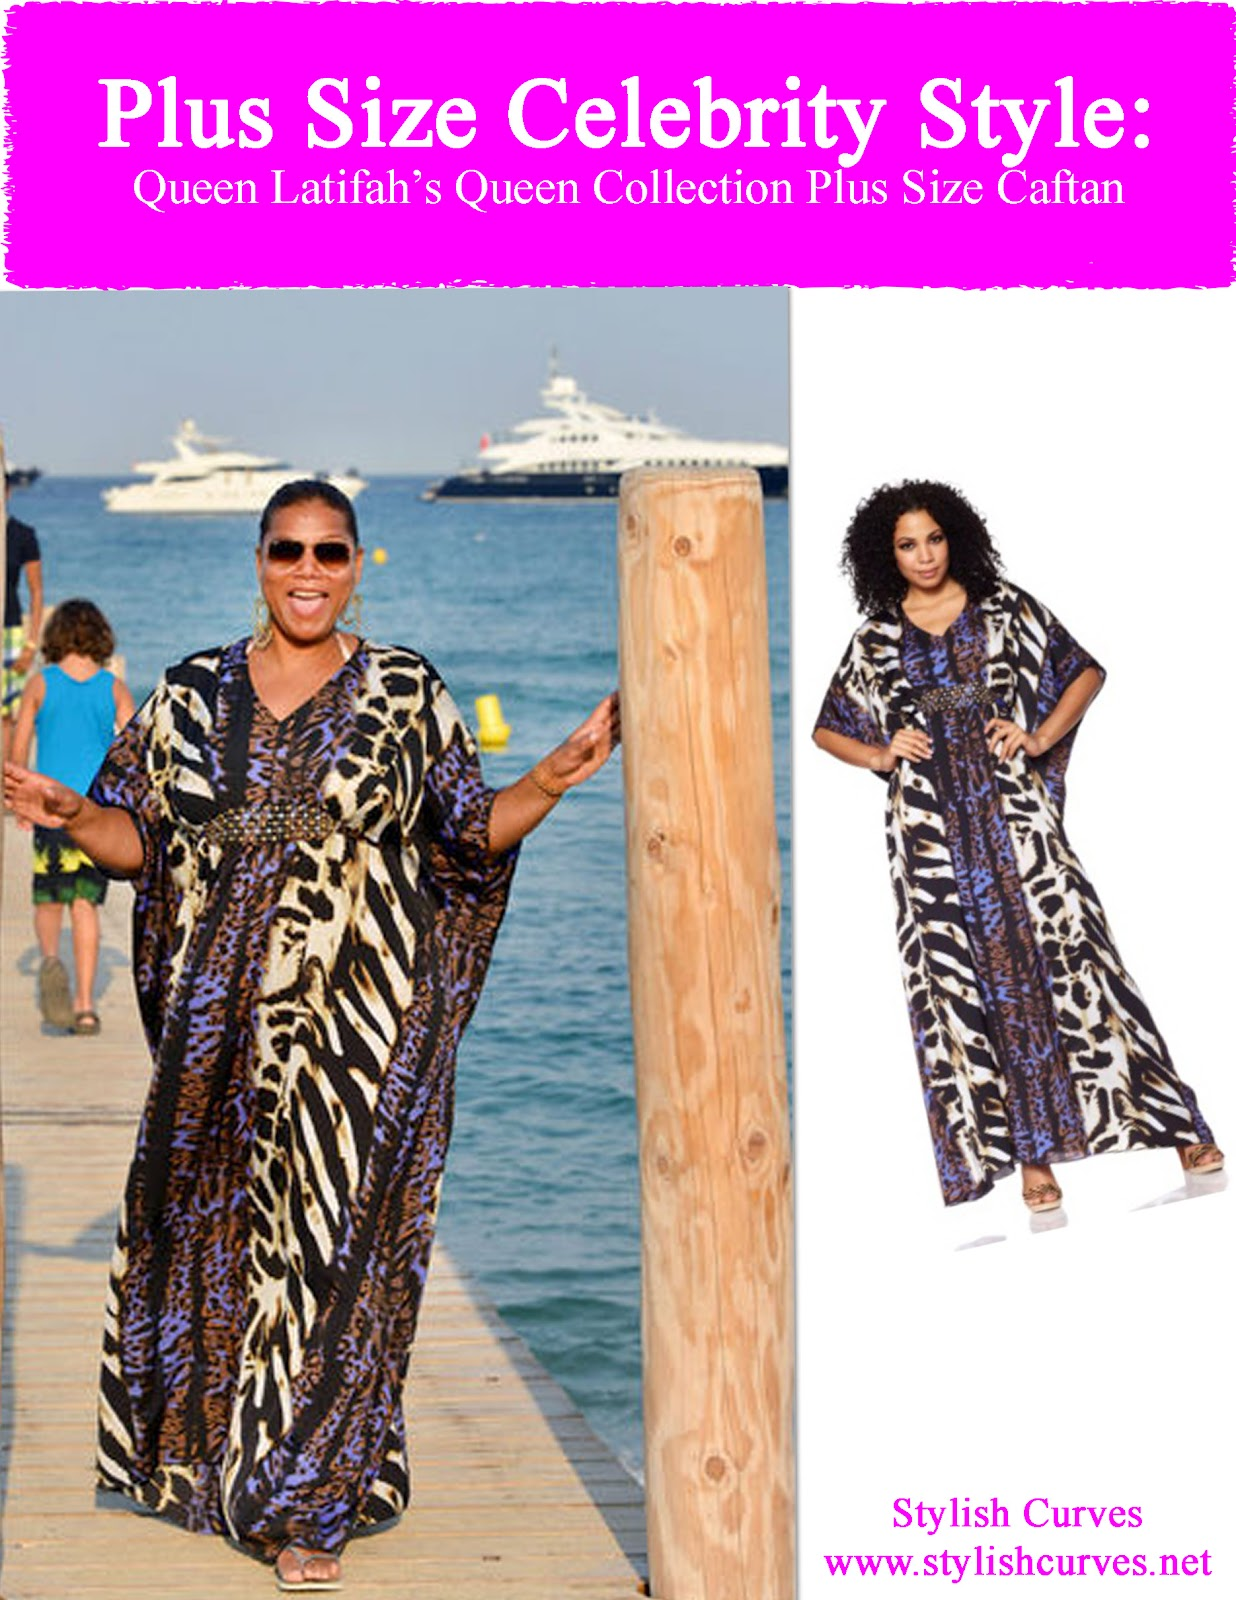 Plus Size Celebrities Plus Size Celebrity Style